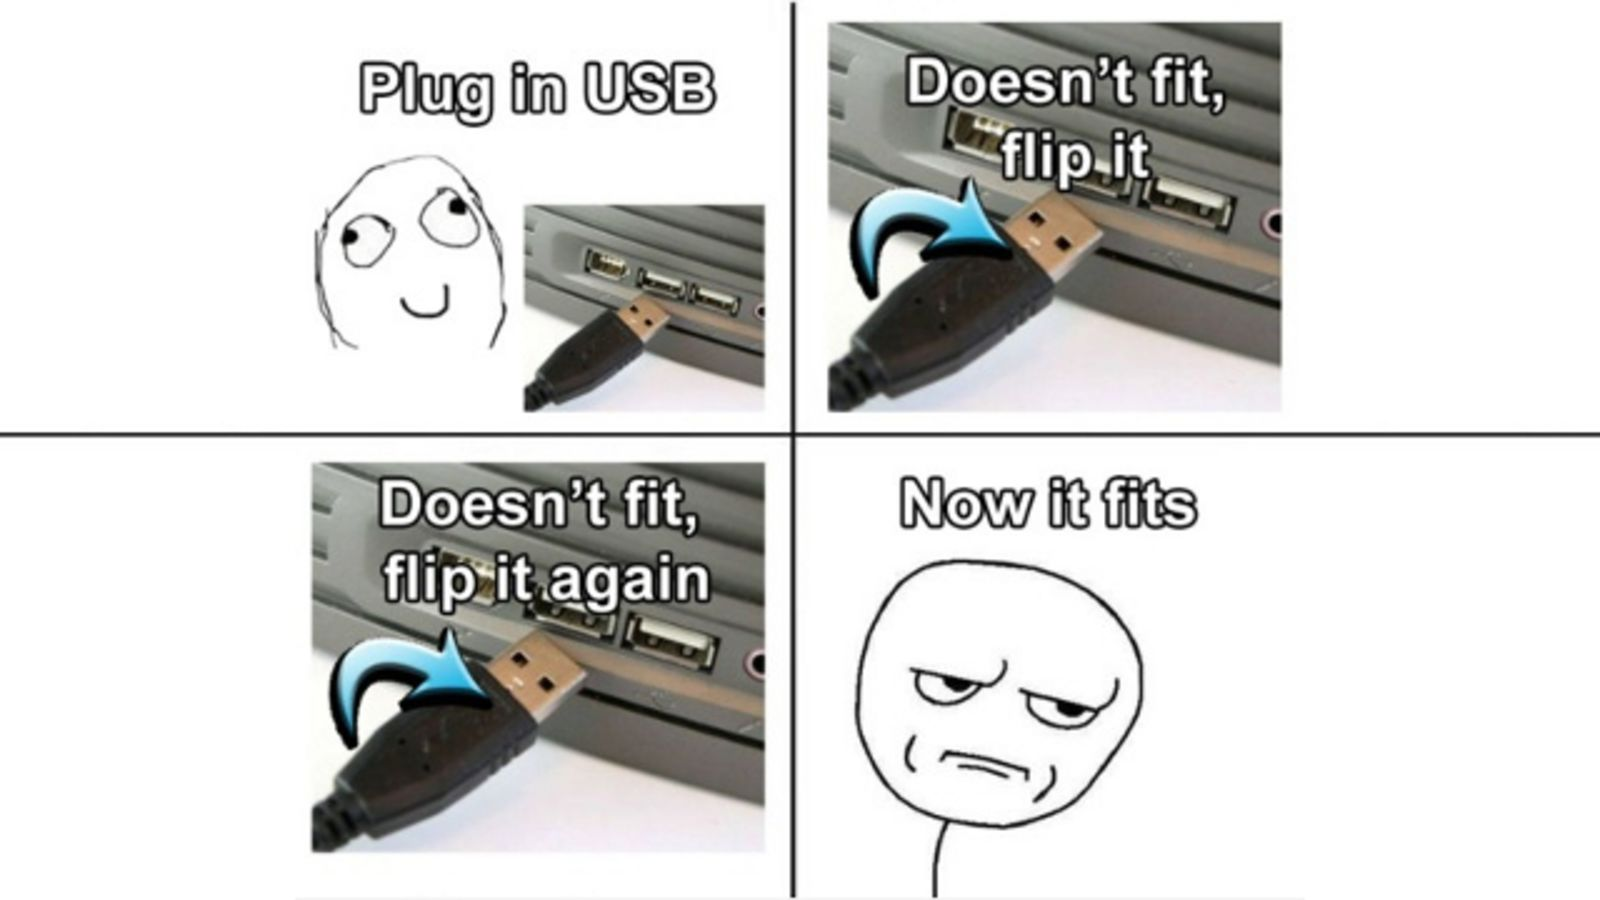 USB charging problems